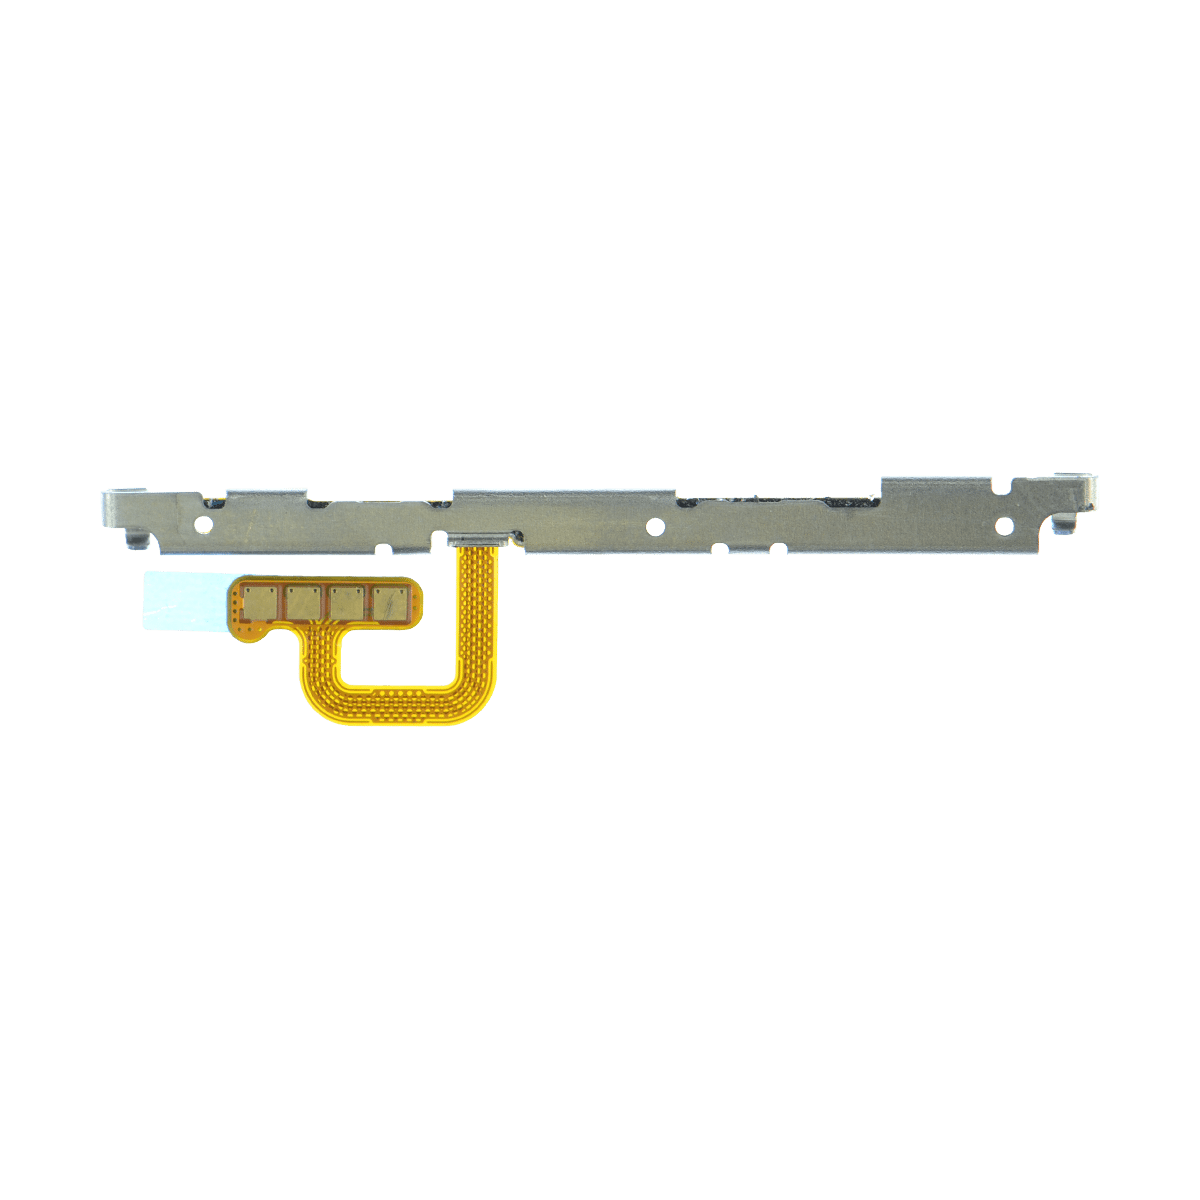 Samsung Galaxy S9 Volume Flex Cable Replacement